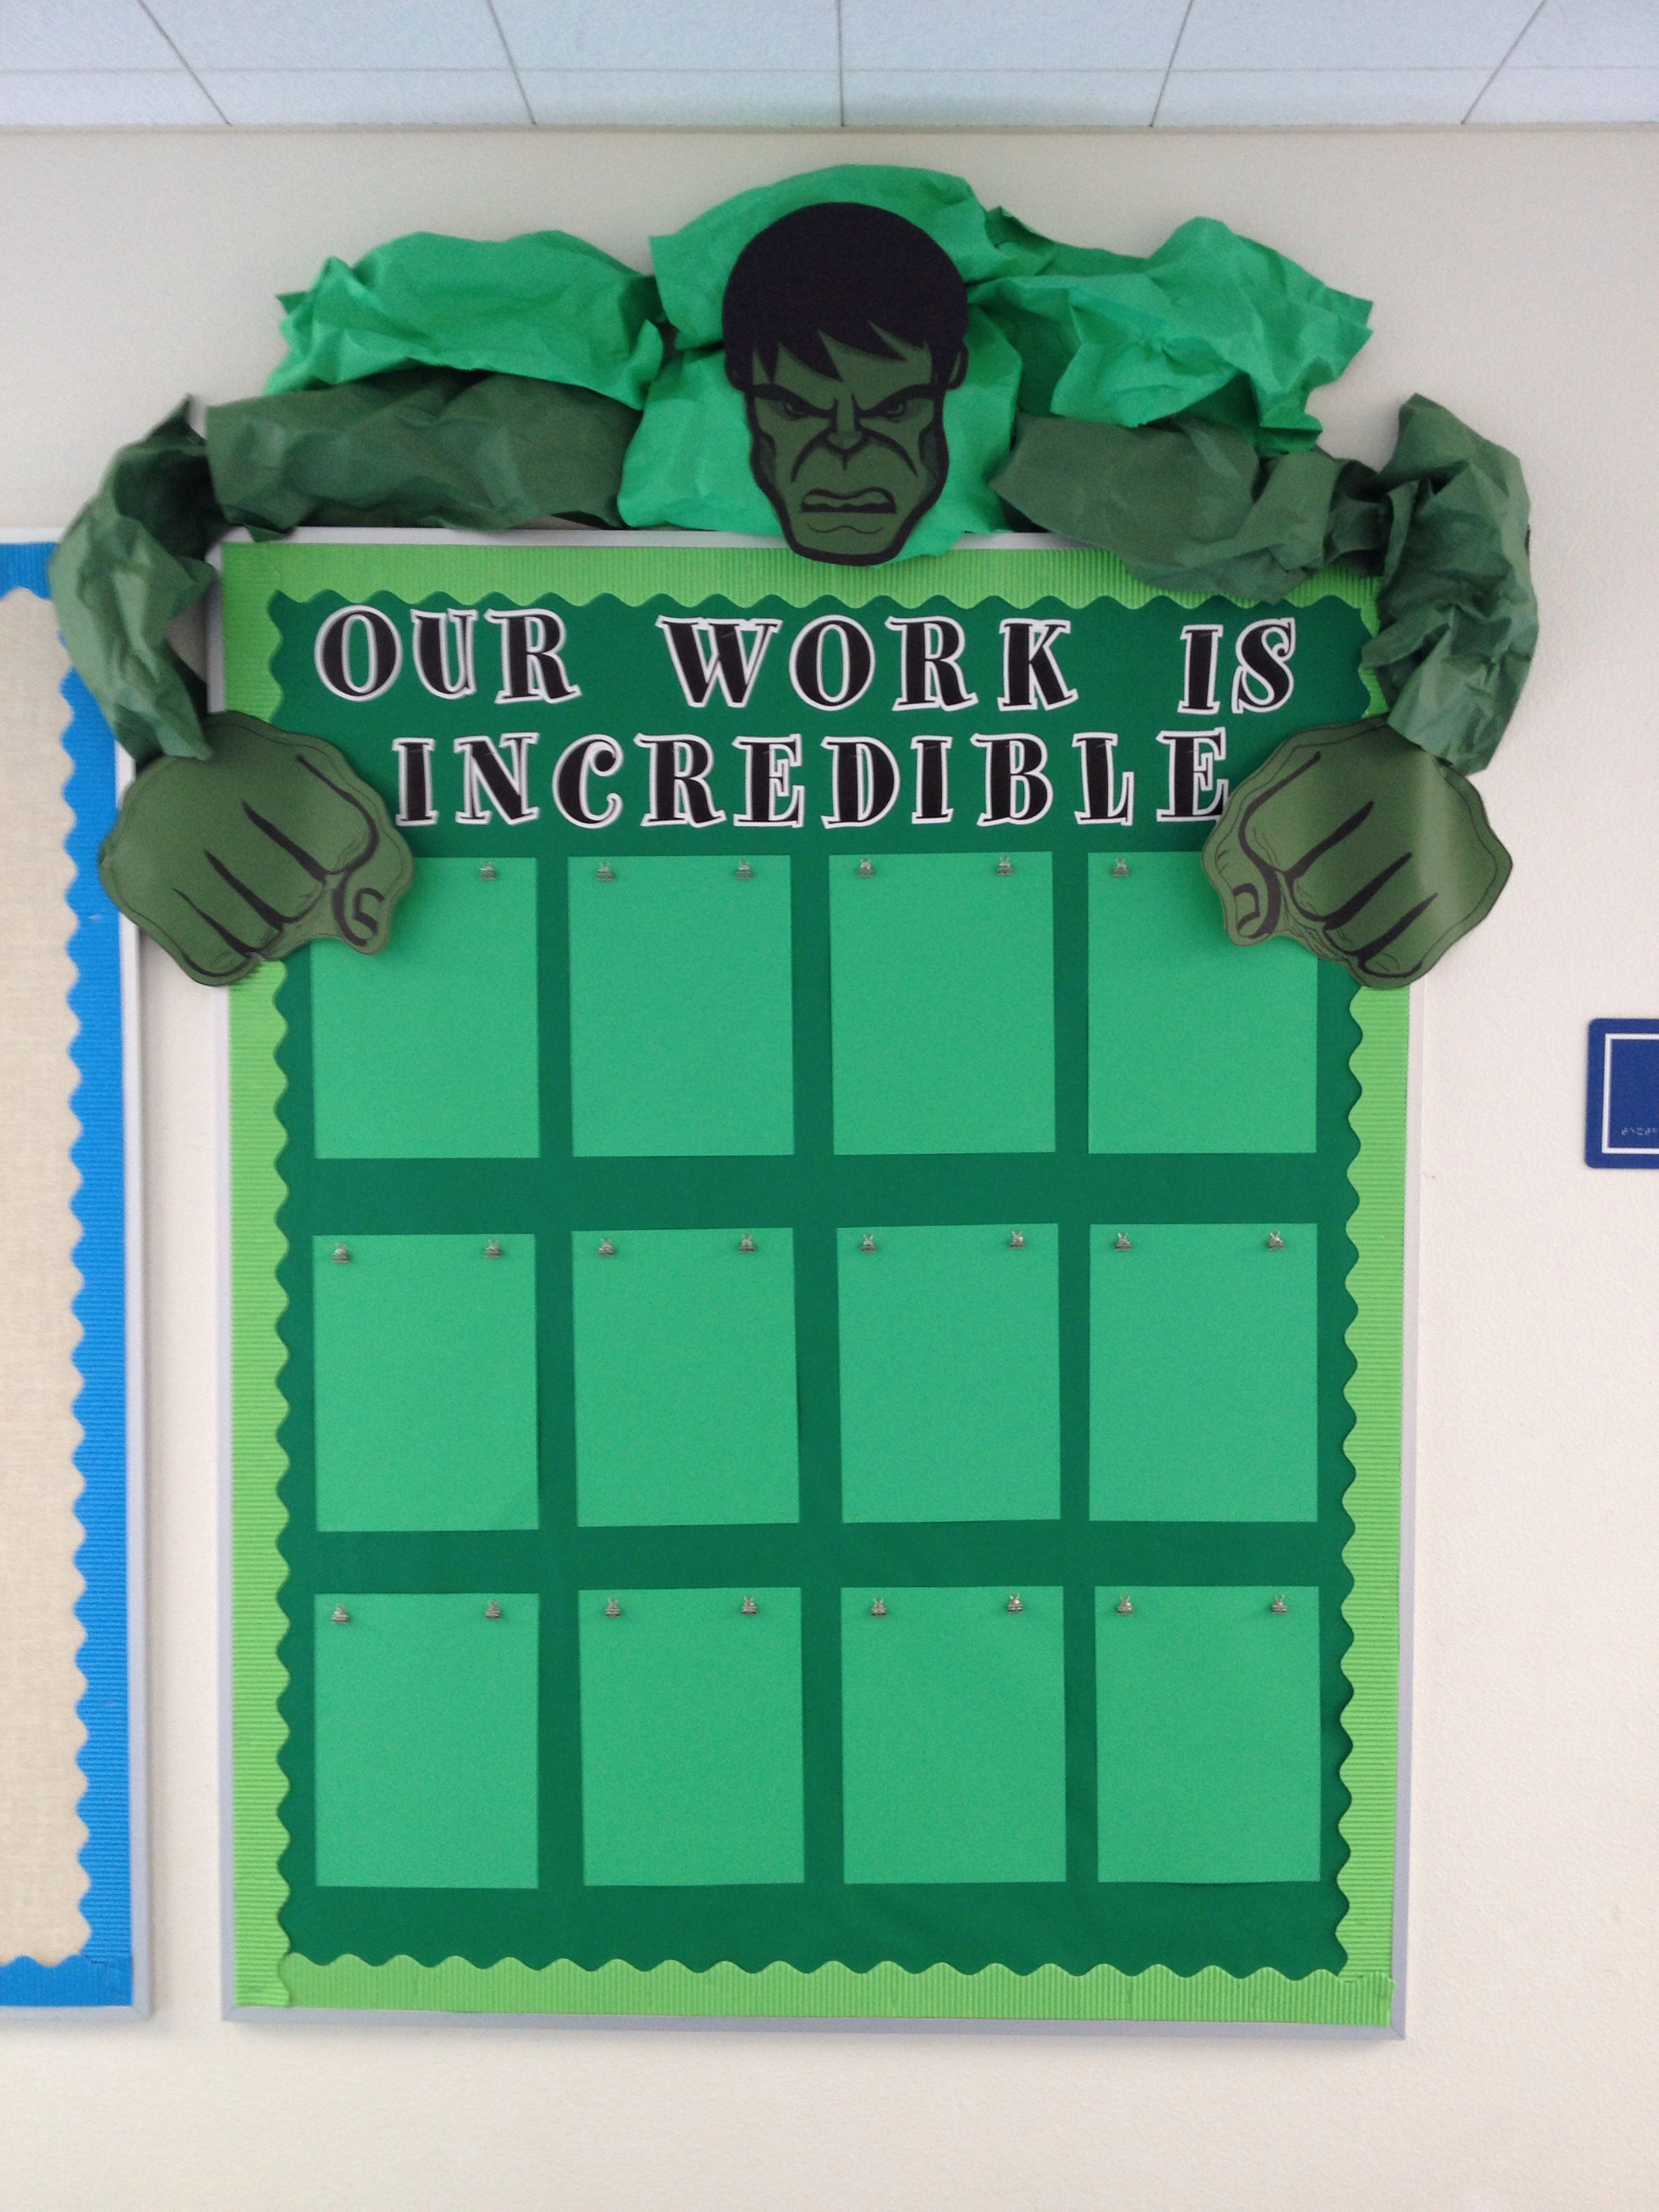 Incredible Hulk Bulletin Board Found A Cool Picture Of Hulk S Face And Hands Online Dre Superhero Classroom Theme Hero Classroom Theme Superhero Classroom